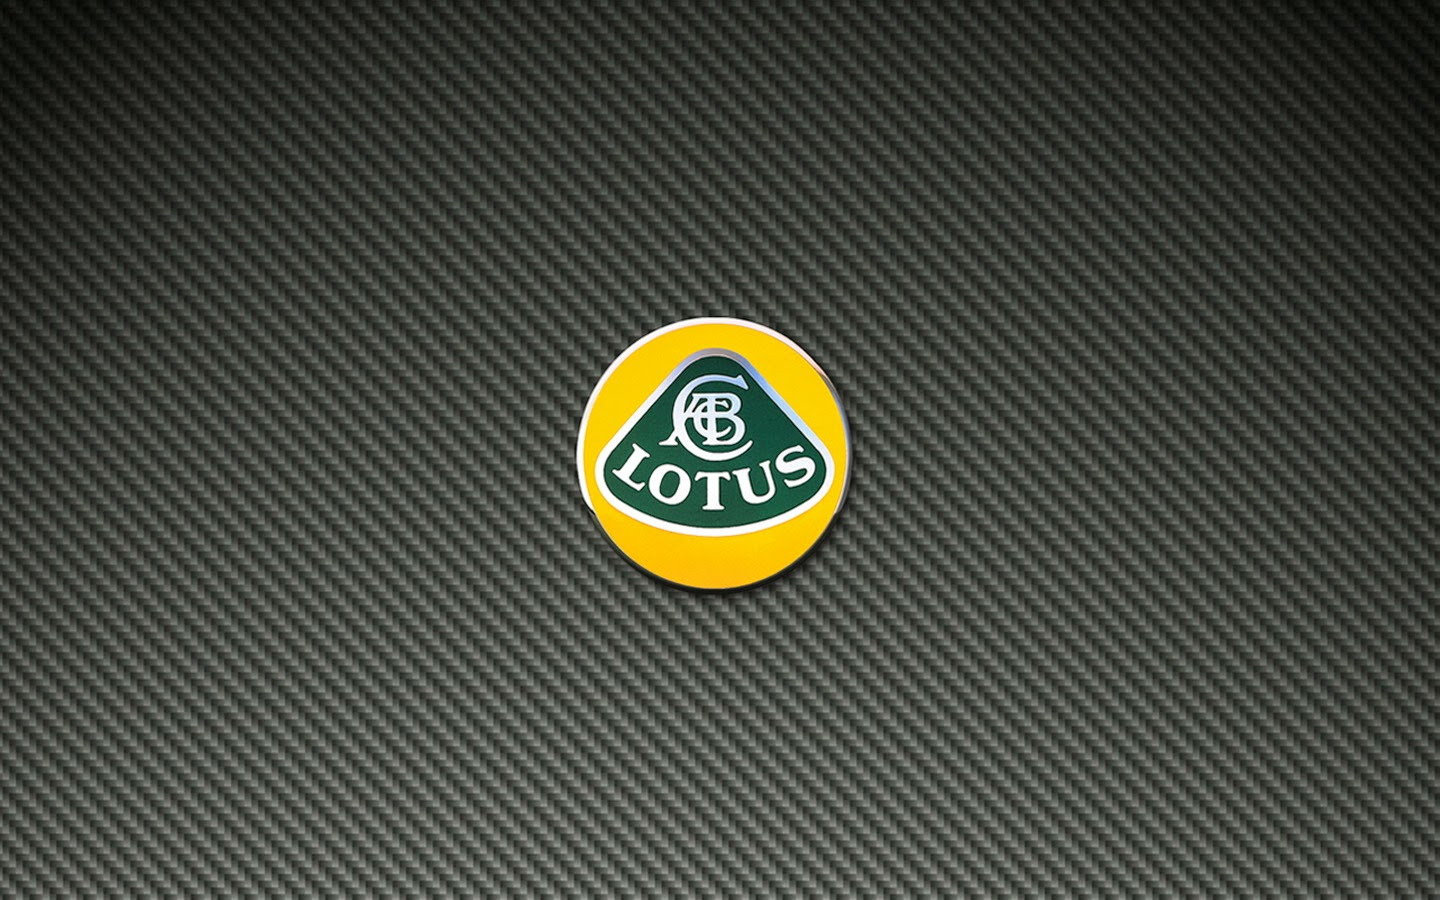 Free Download Lotus Logo Azs Cars 1440x900 For Your